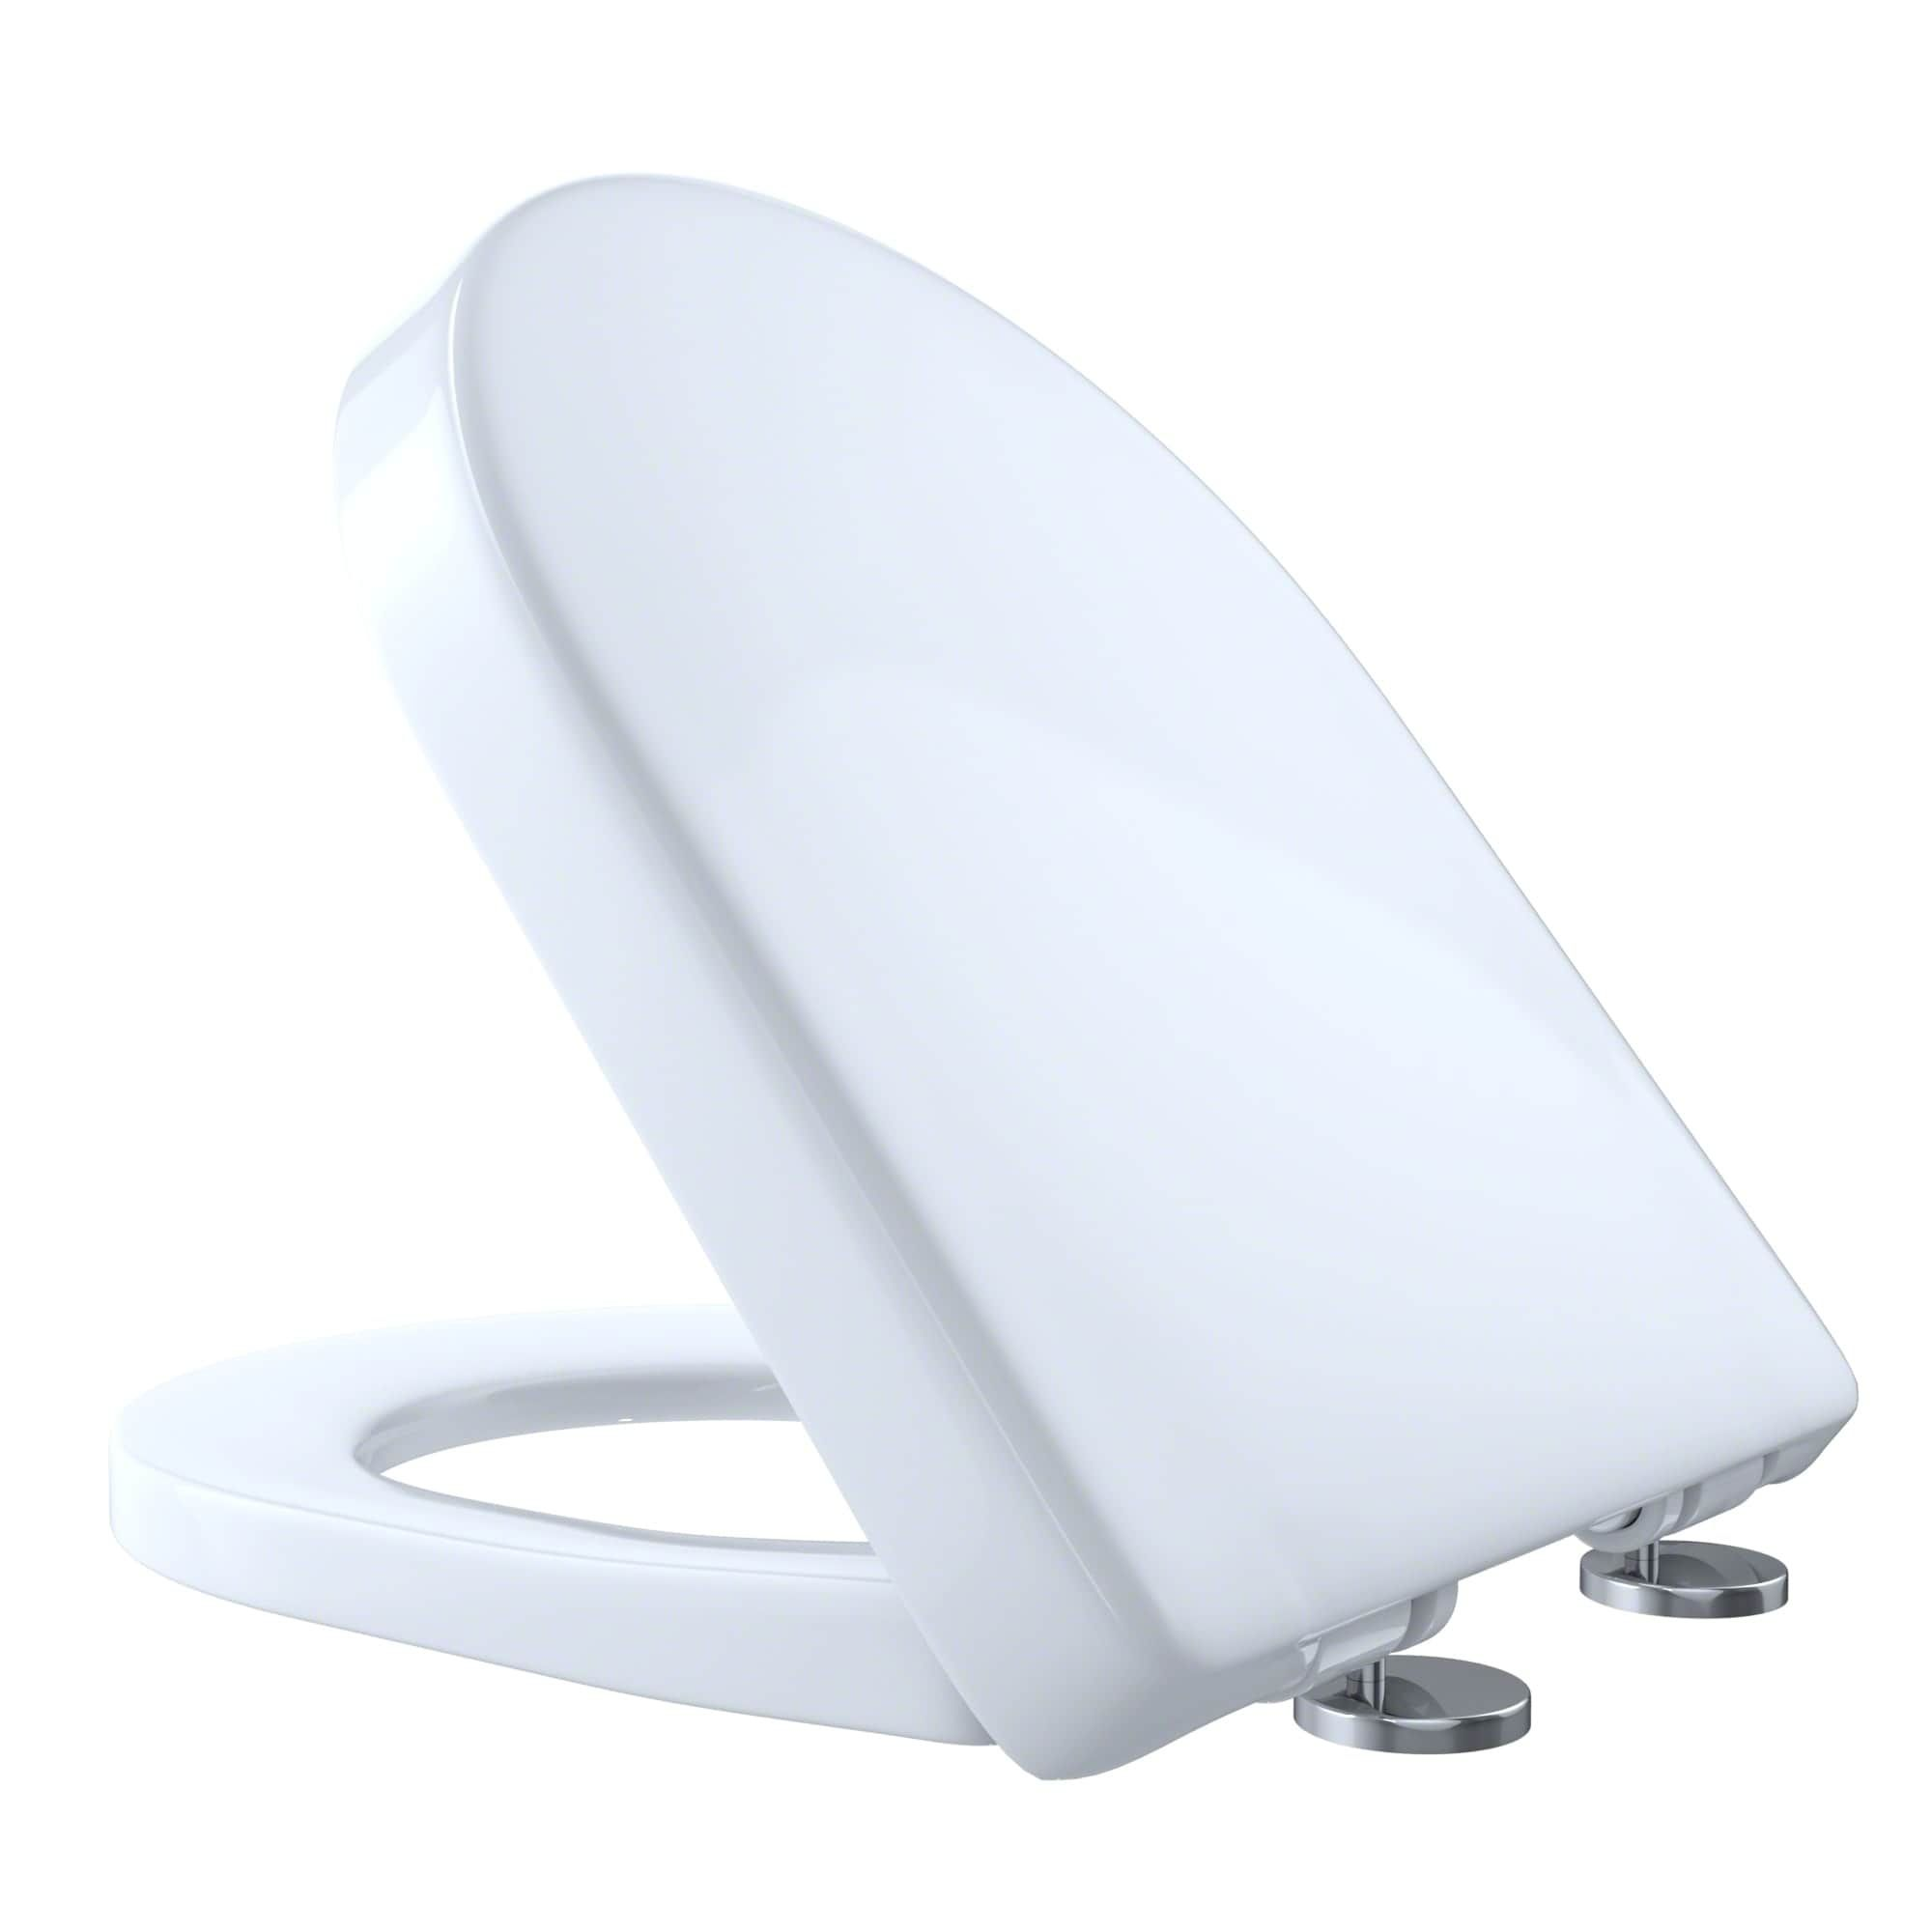 Toto D-Shaped SoftClose Toilet Seat SS117#01 Cotton, White | Toilet ...